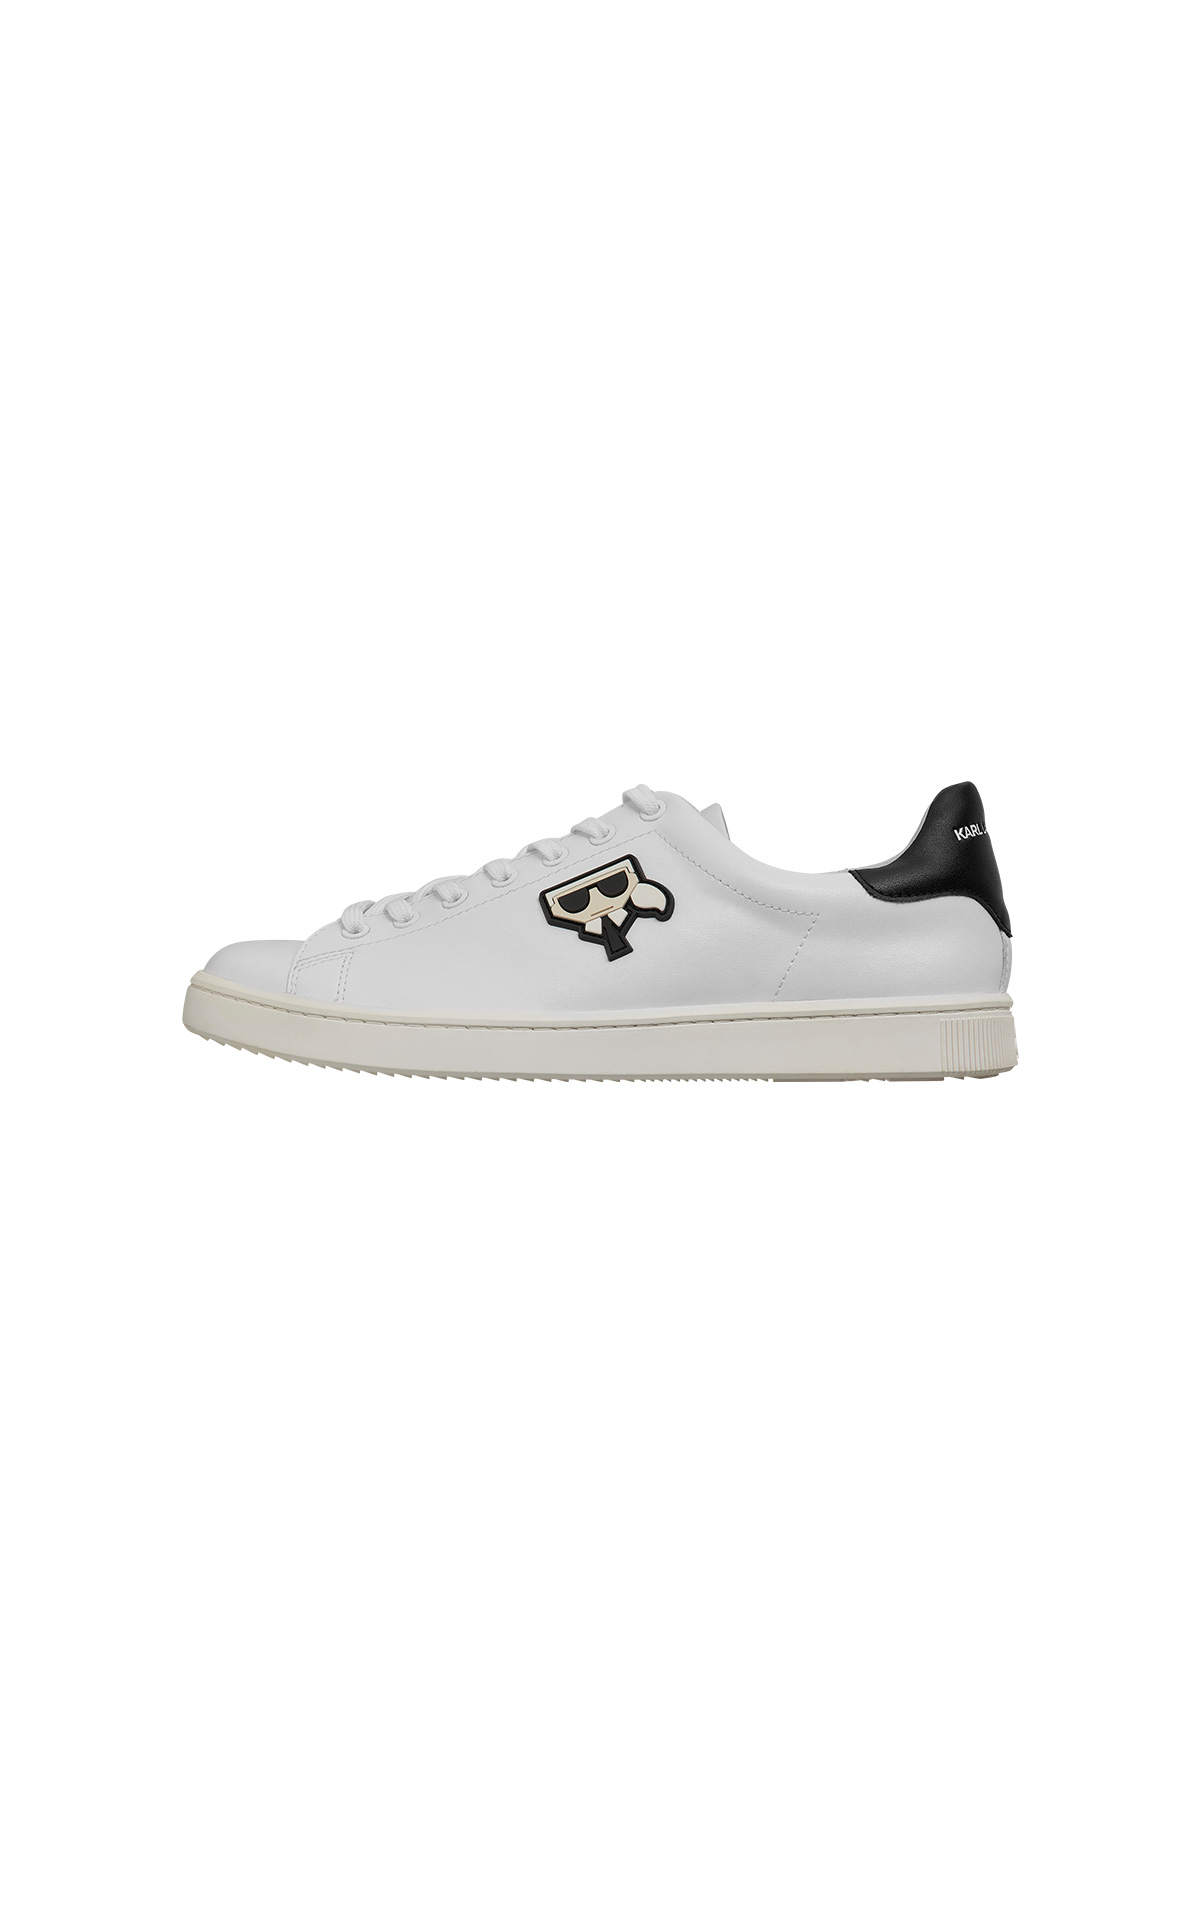 KARL LAGERFELD Kupsole Kocktail lo lace trainer at The Bicester Village Shopping Collection